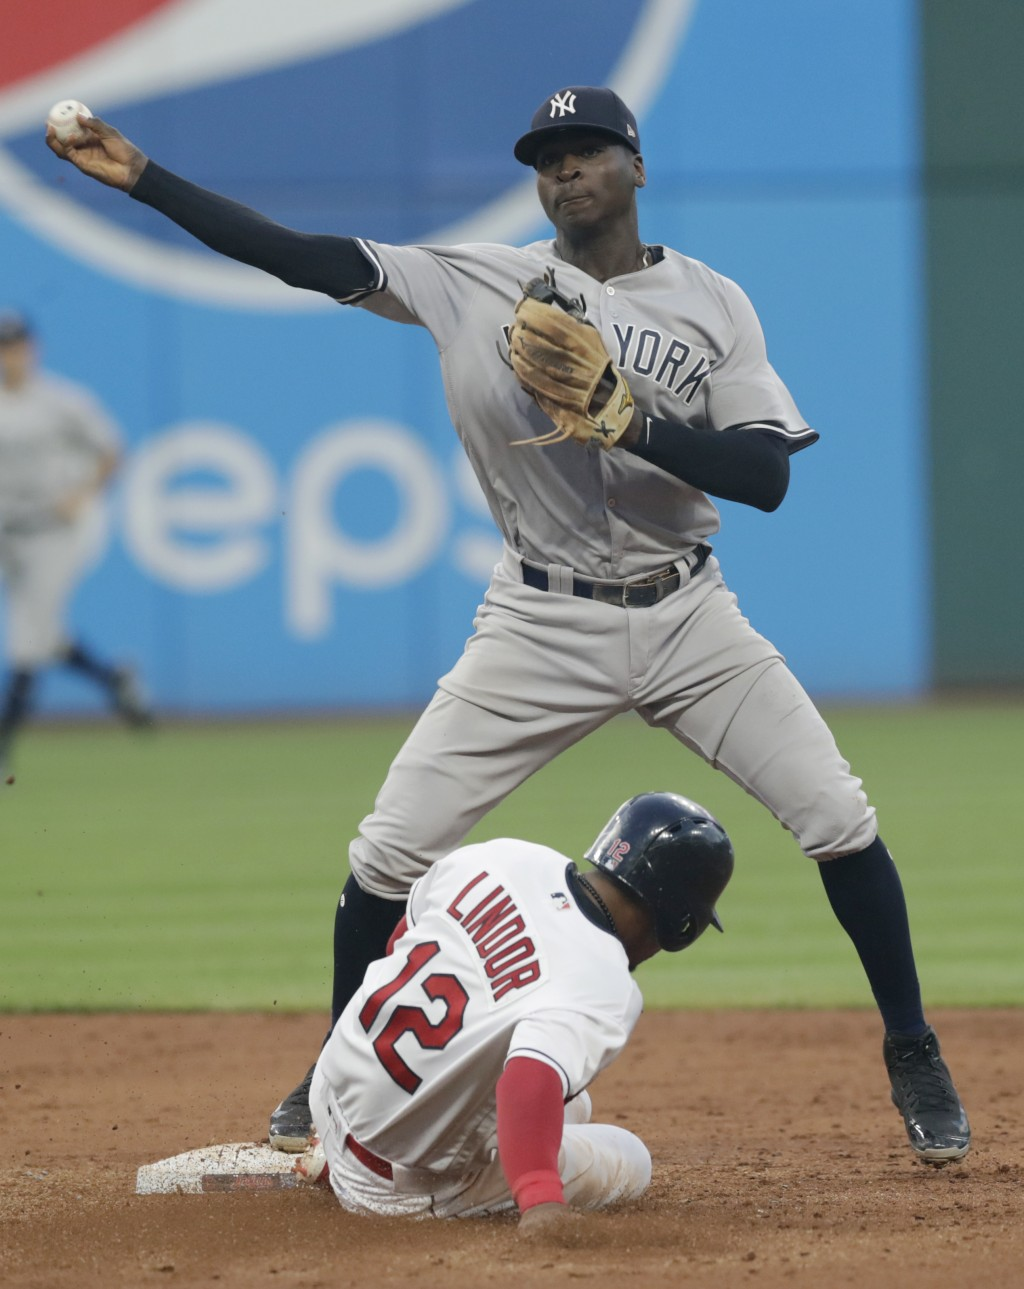 New York Yankees' Didi Gregorius throws to first base after getting Cleveland Indians' Francisco Lindor out at second base during the fifth inning of